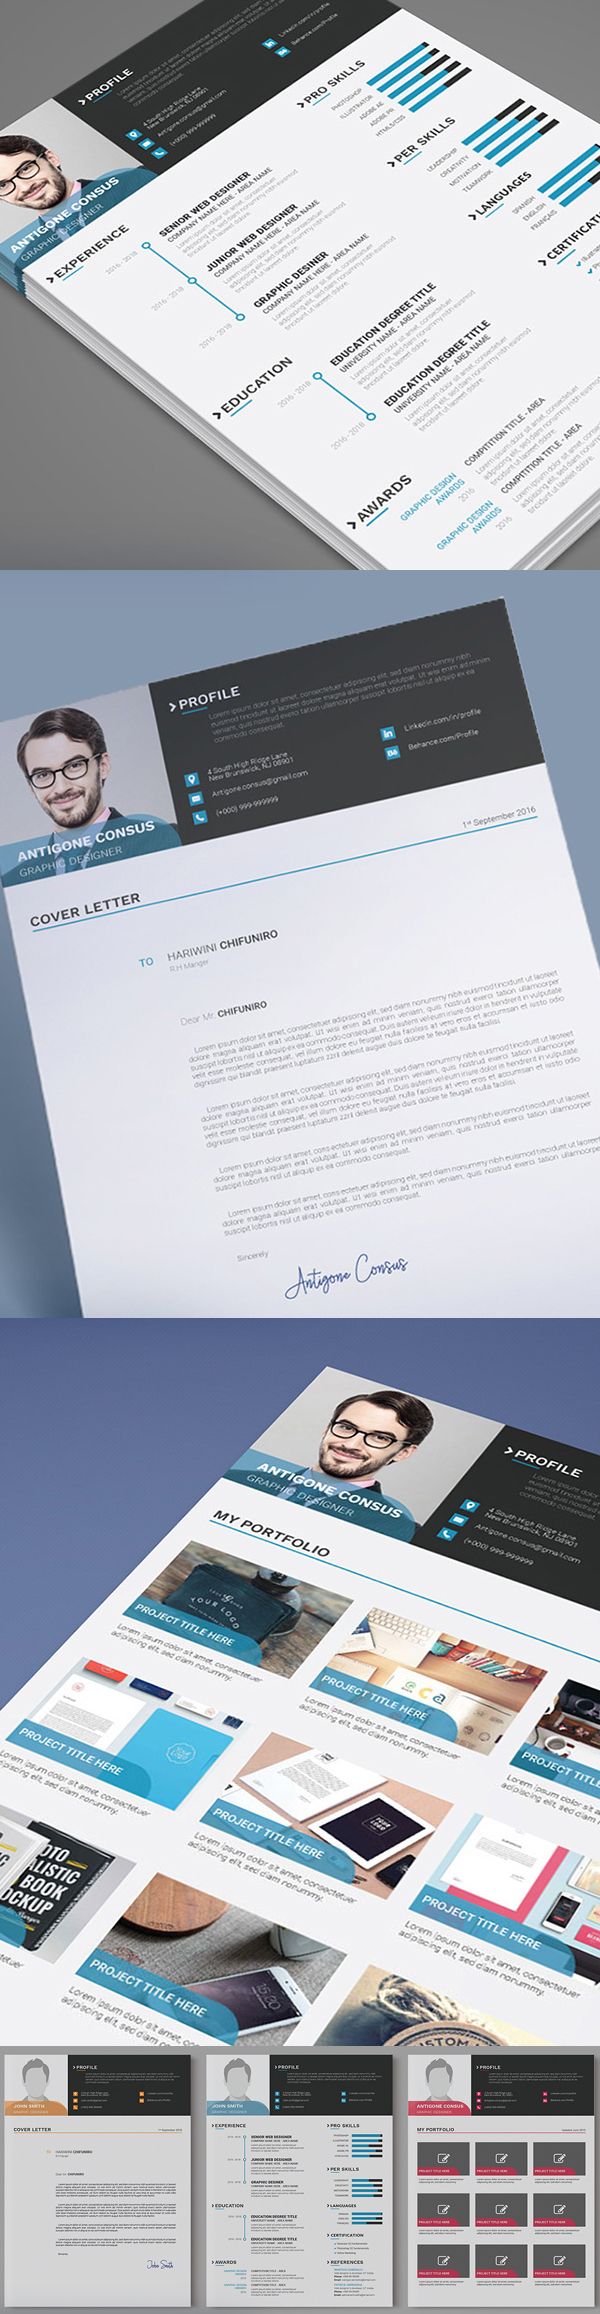 25 Fresh Free Professional Resume Templates - 1